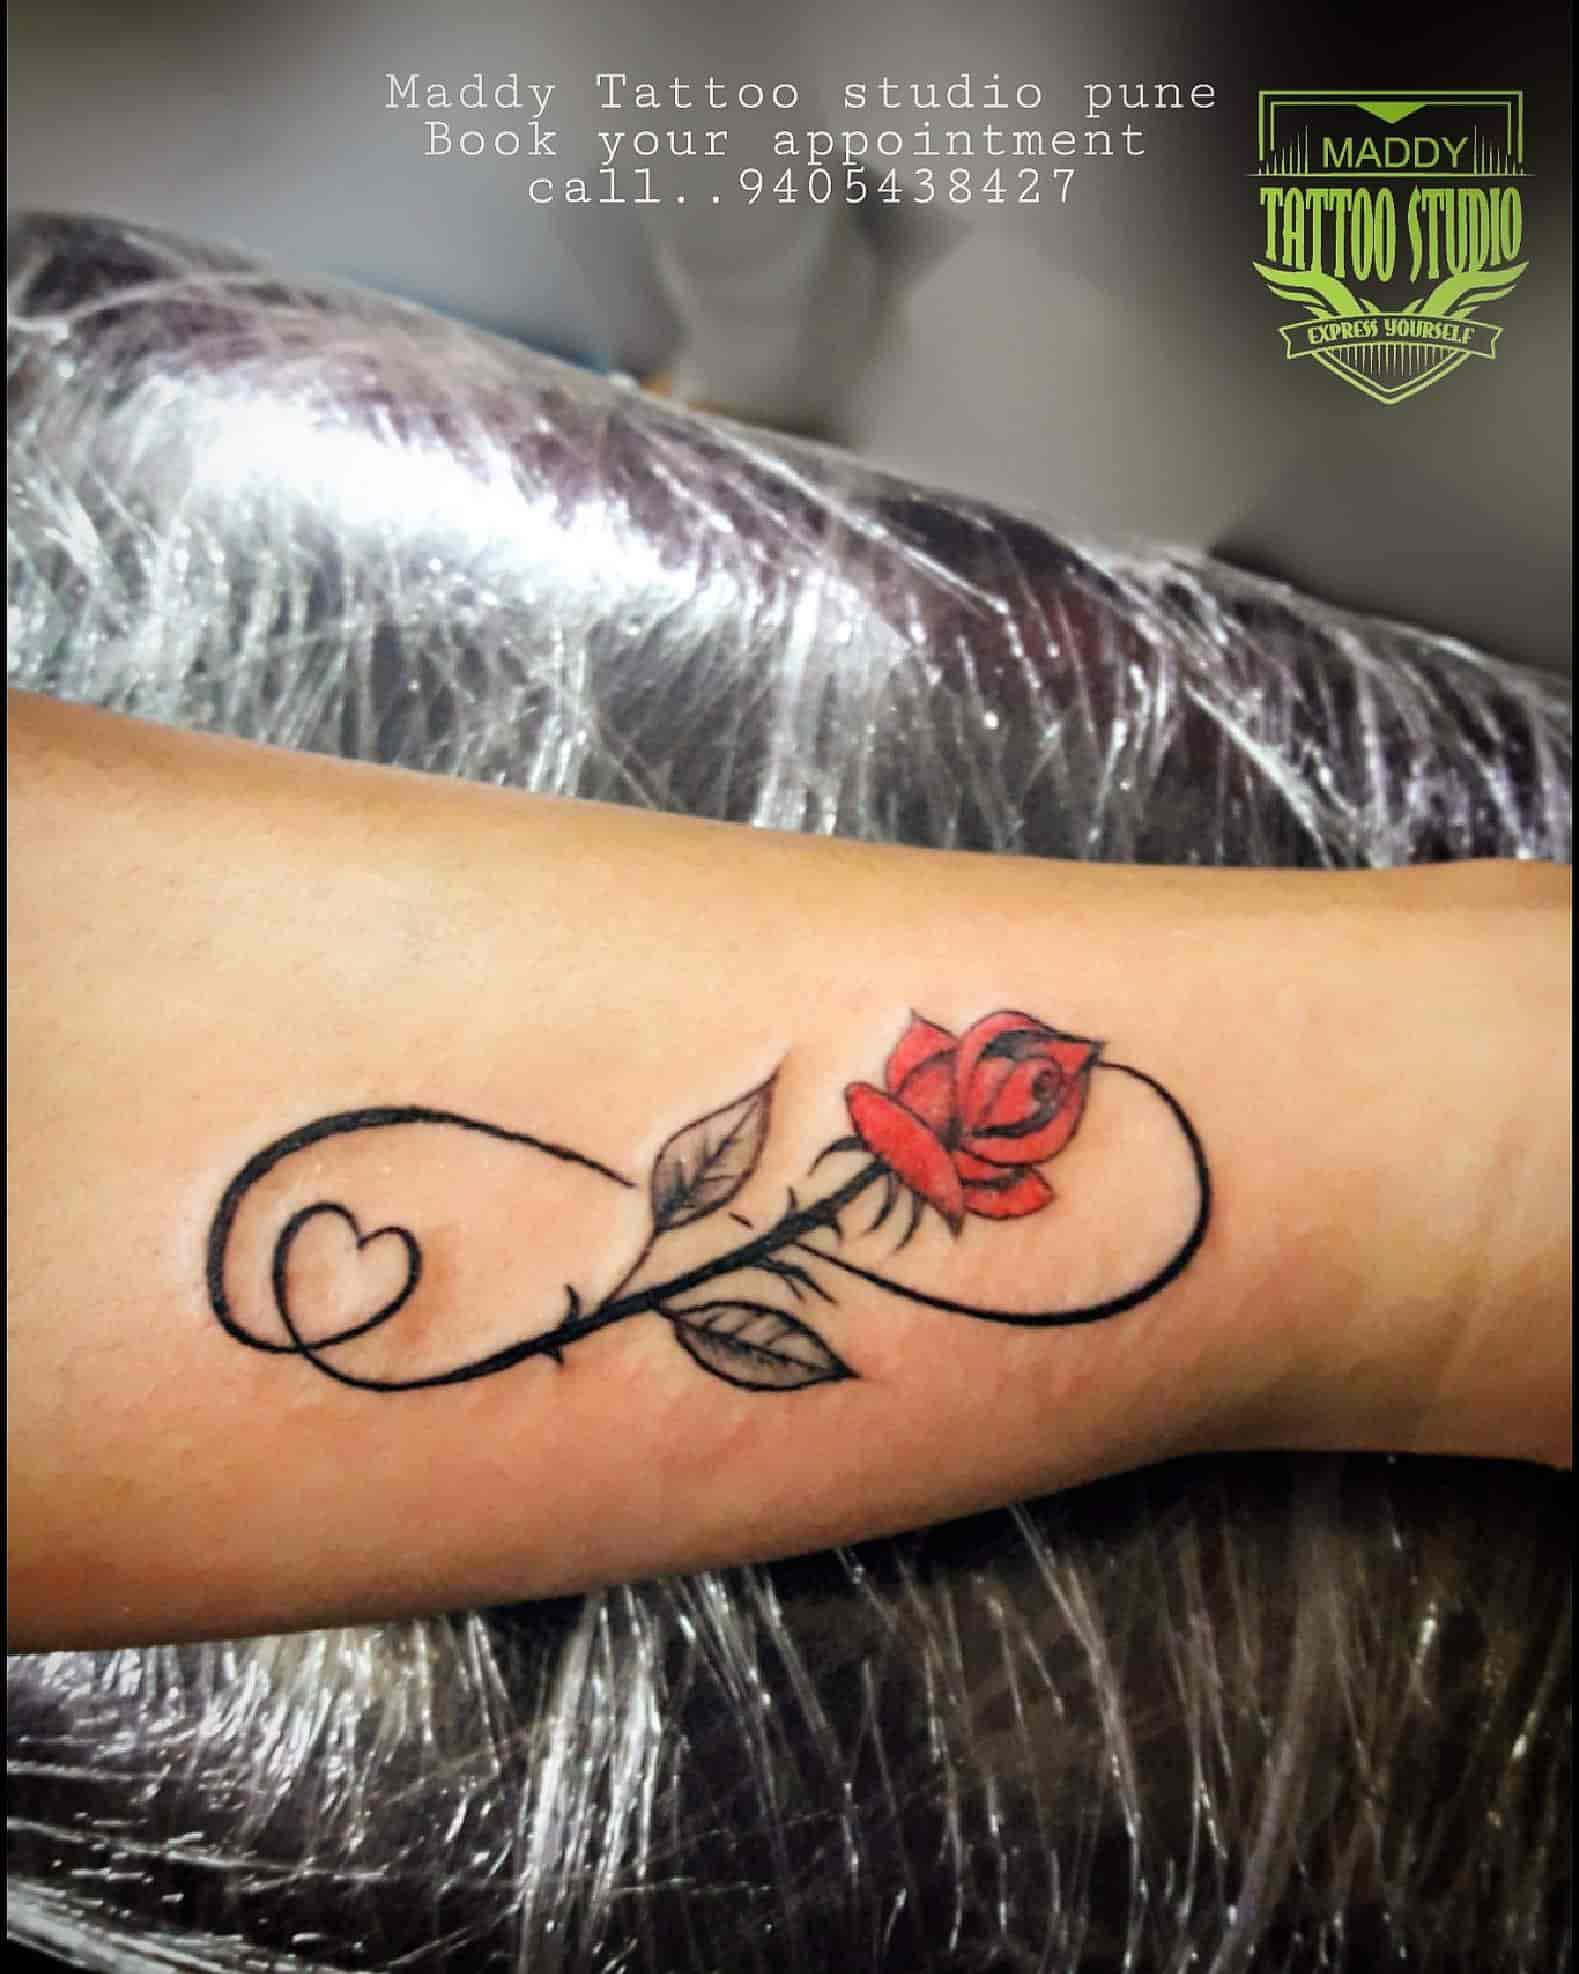 Maddy Tattoos Studio Camp Tattoo Artists In Pune Pune